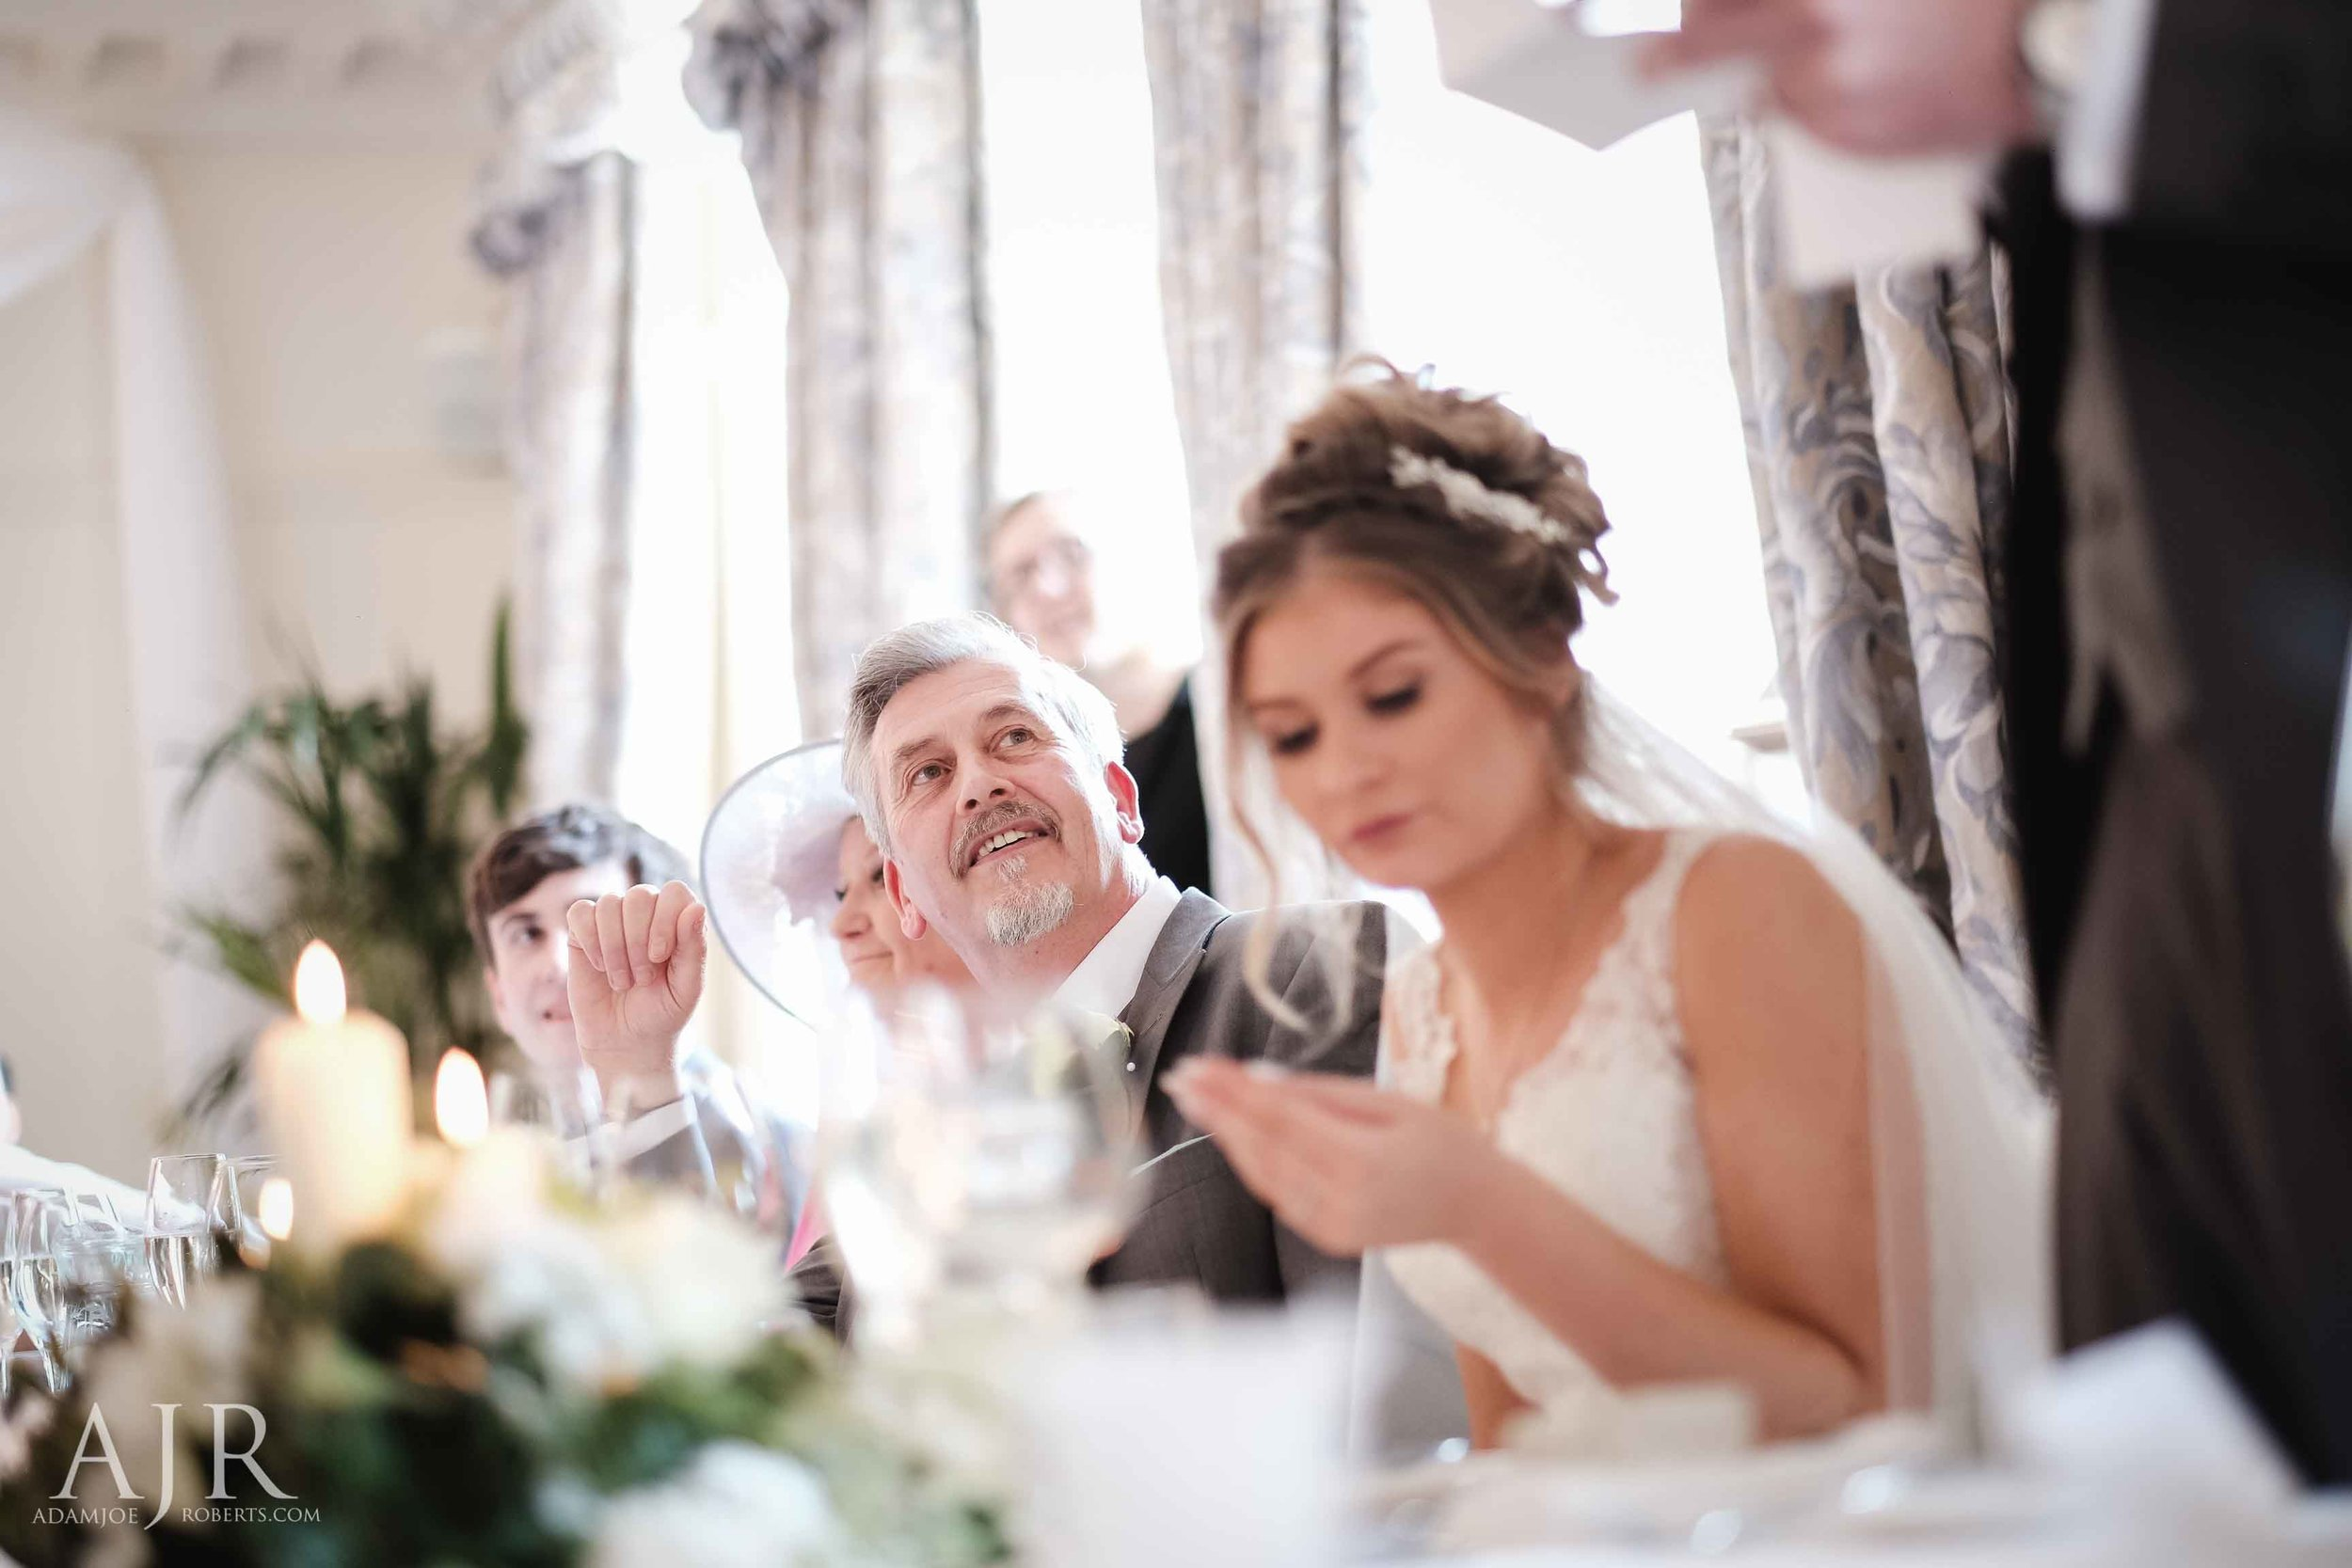 Eaves Hall Clitheroe north west documentry wedding photographer  (77 of 96).jpg